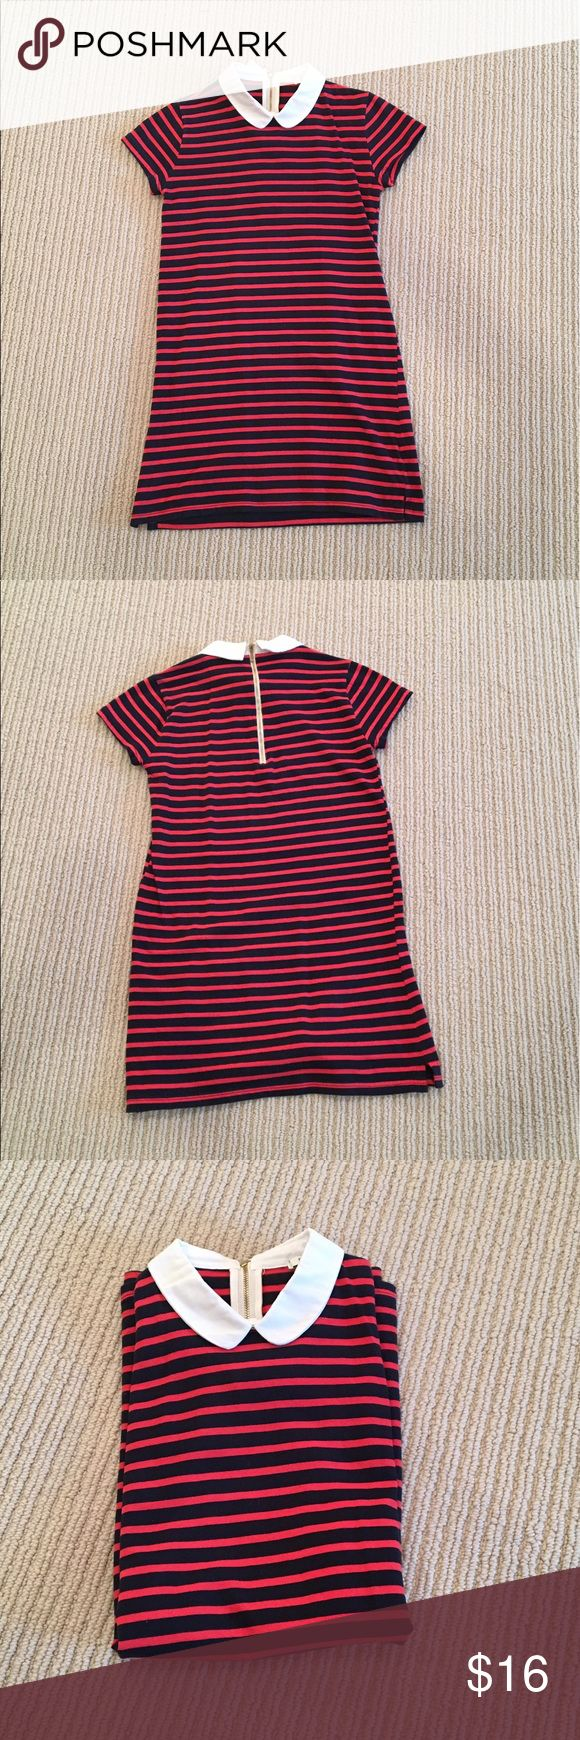 Striped forever 21 dress This is a red and navy striped forever 21 dress that is perfect for a night out or a stroll in the town. Size small with gold zipper on the back with no tears or stains, only worn once. Price negotiable Forever 21 Dresses Mini